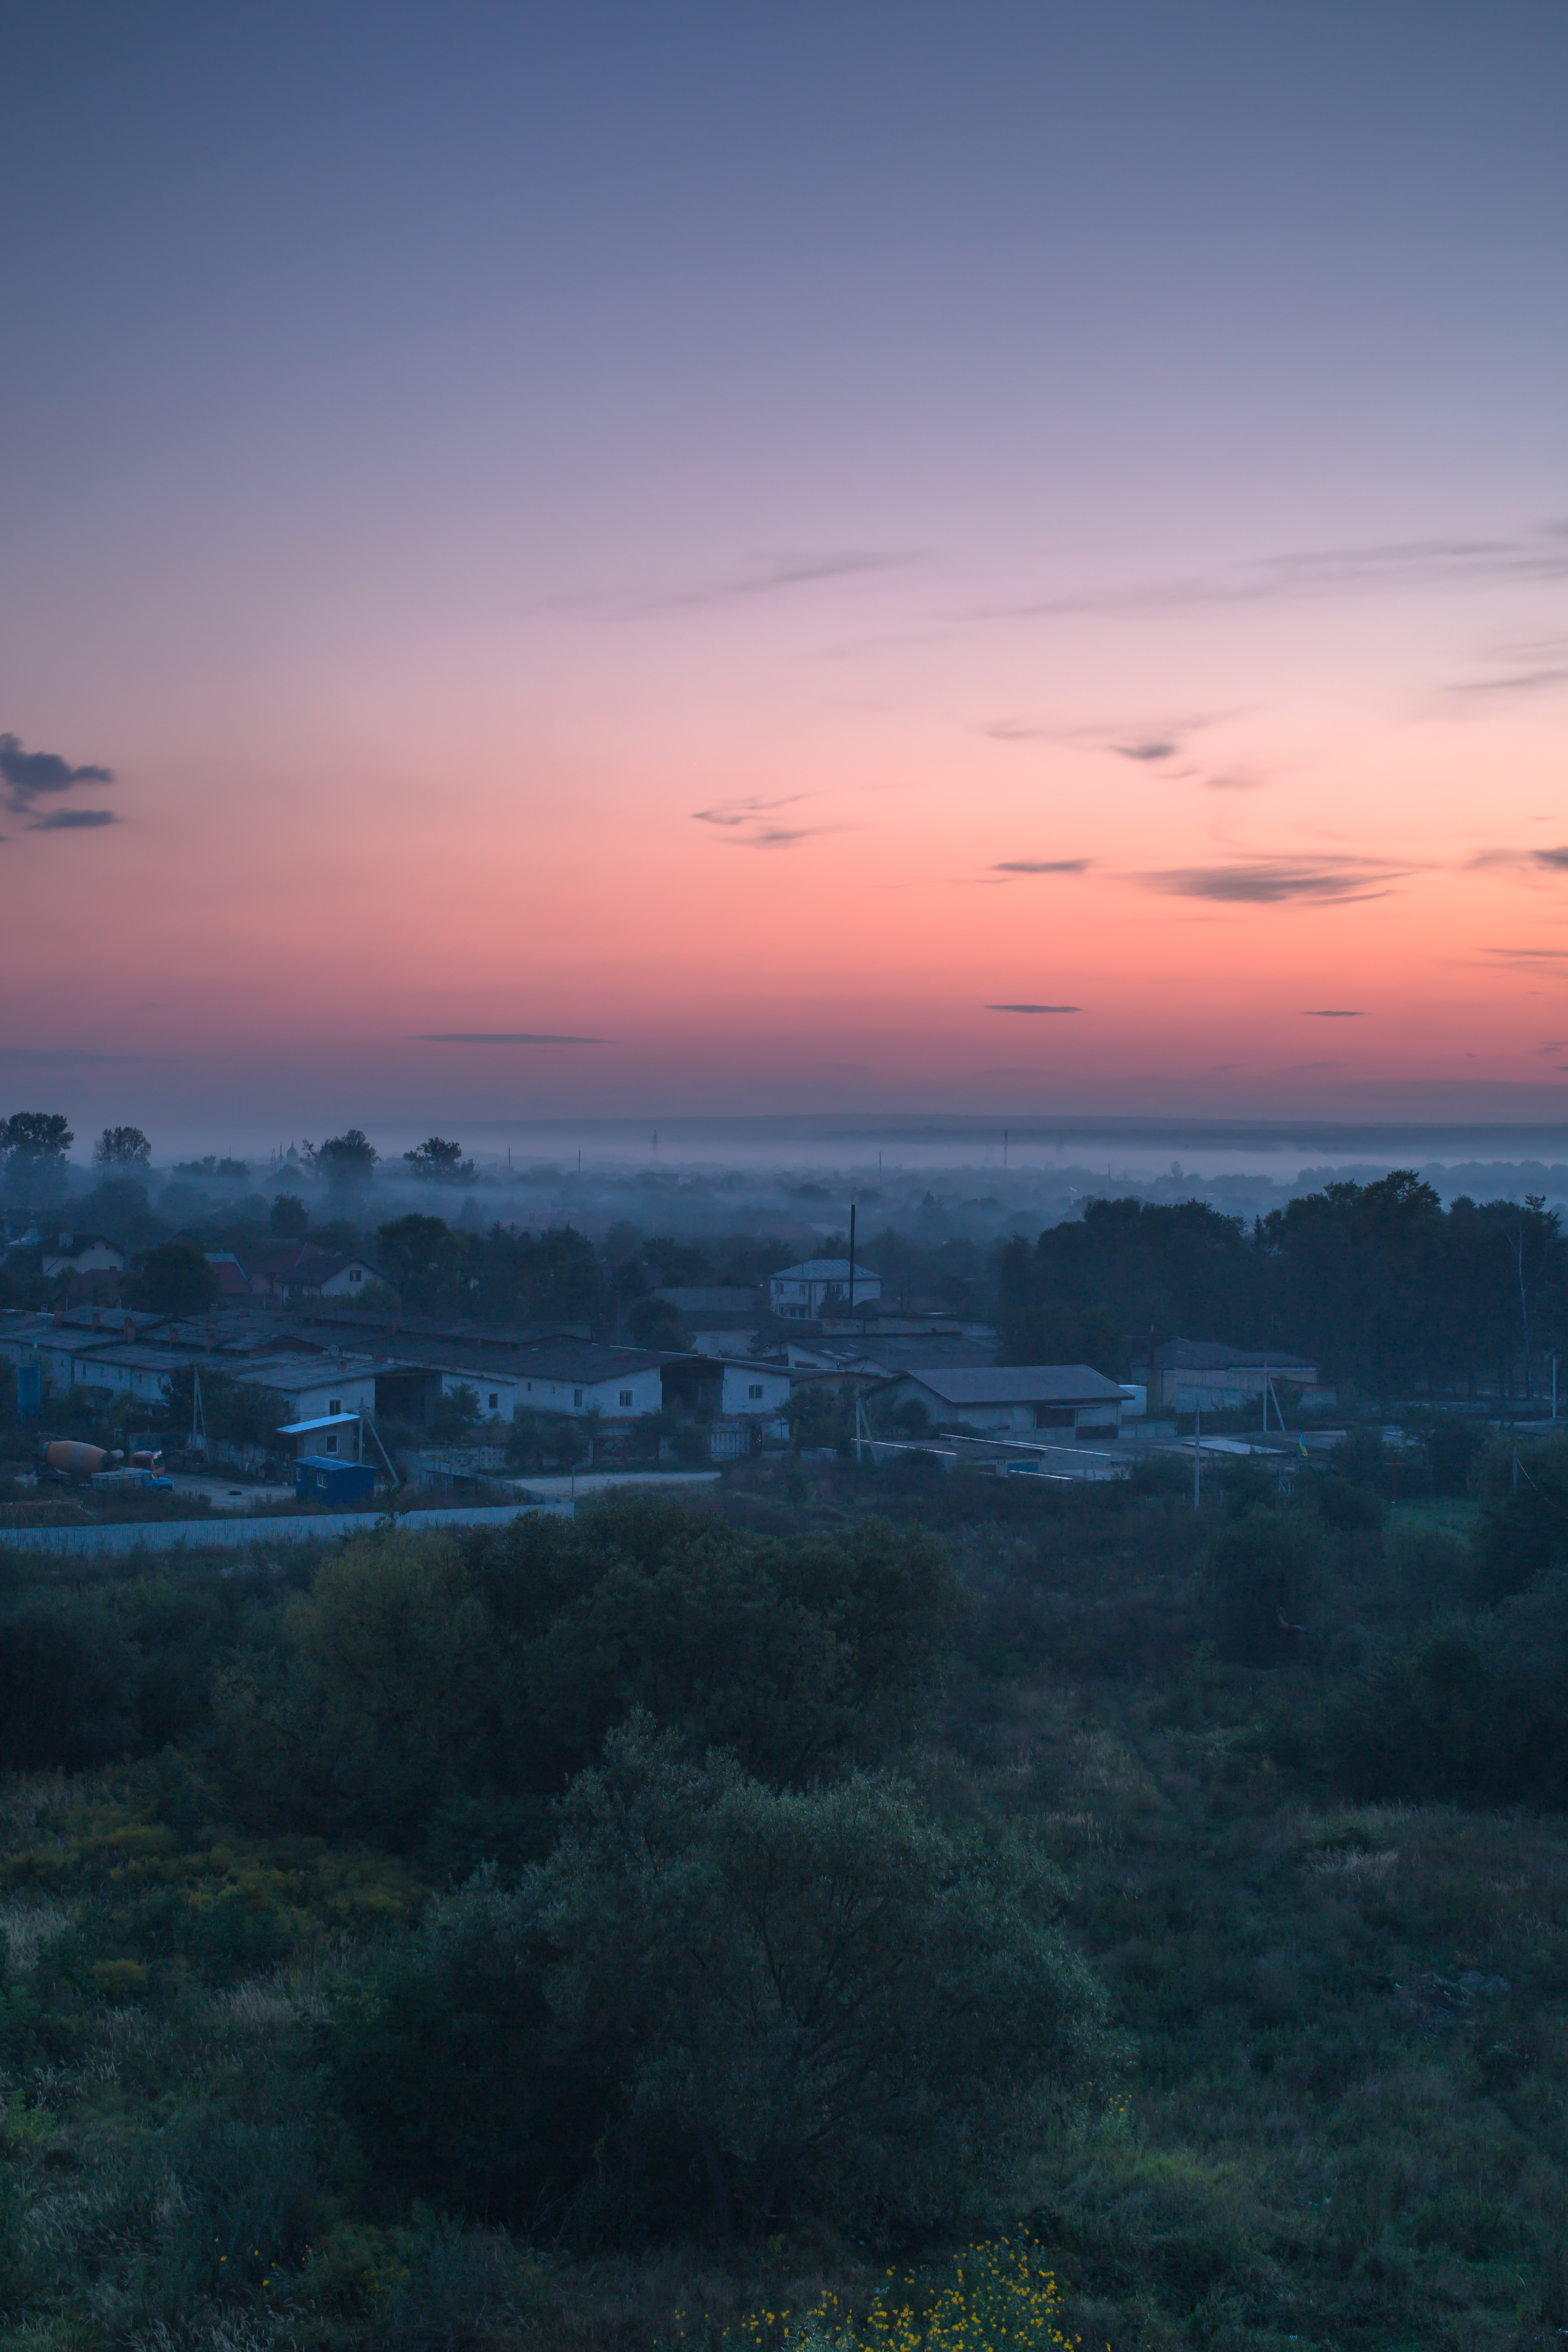 Foggy sunset in Europe	 example image 1